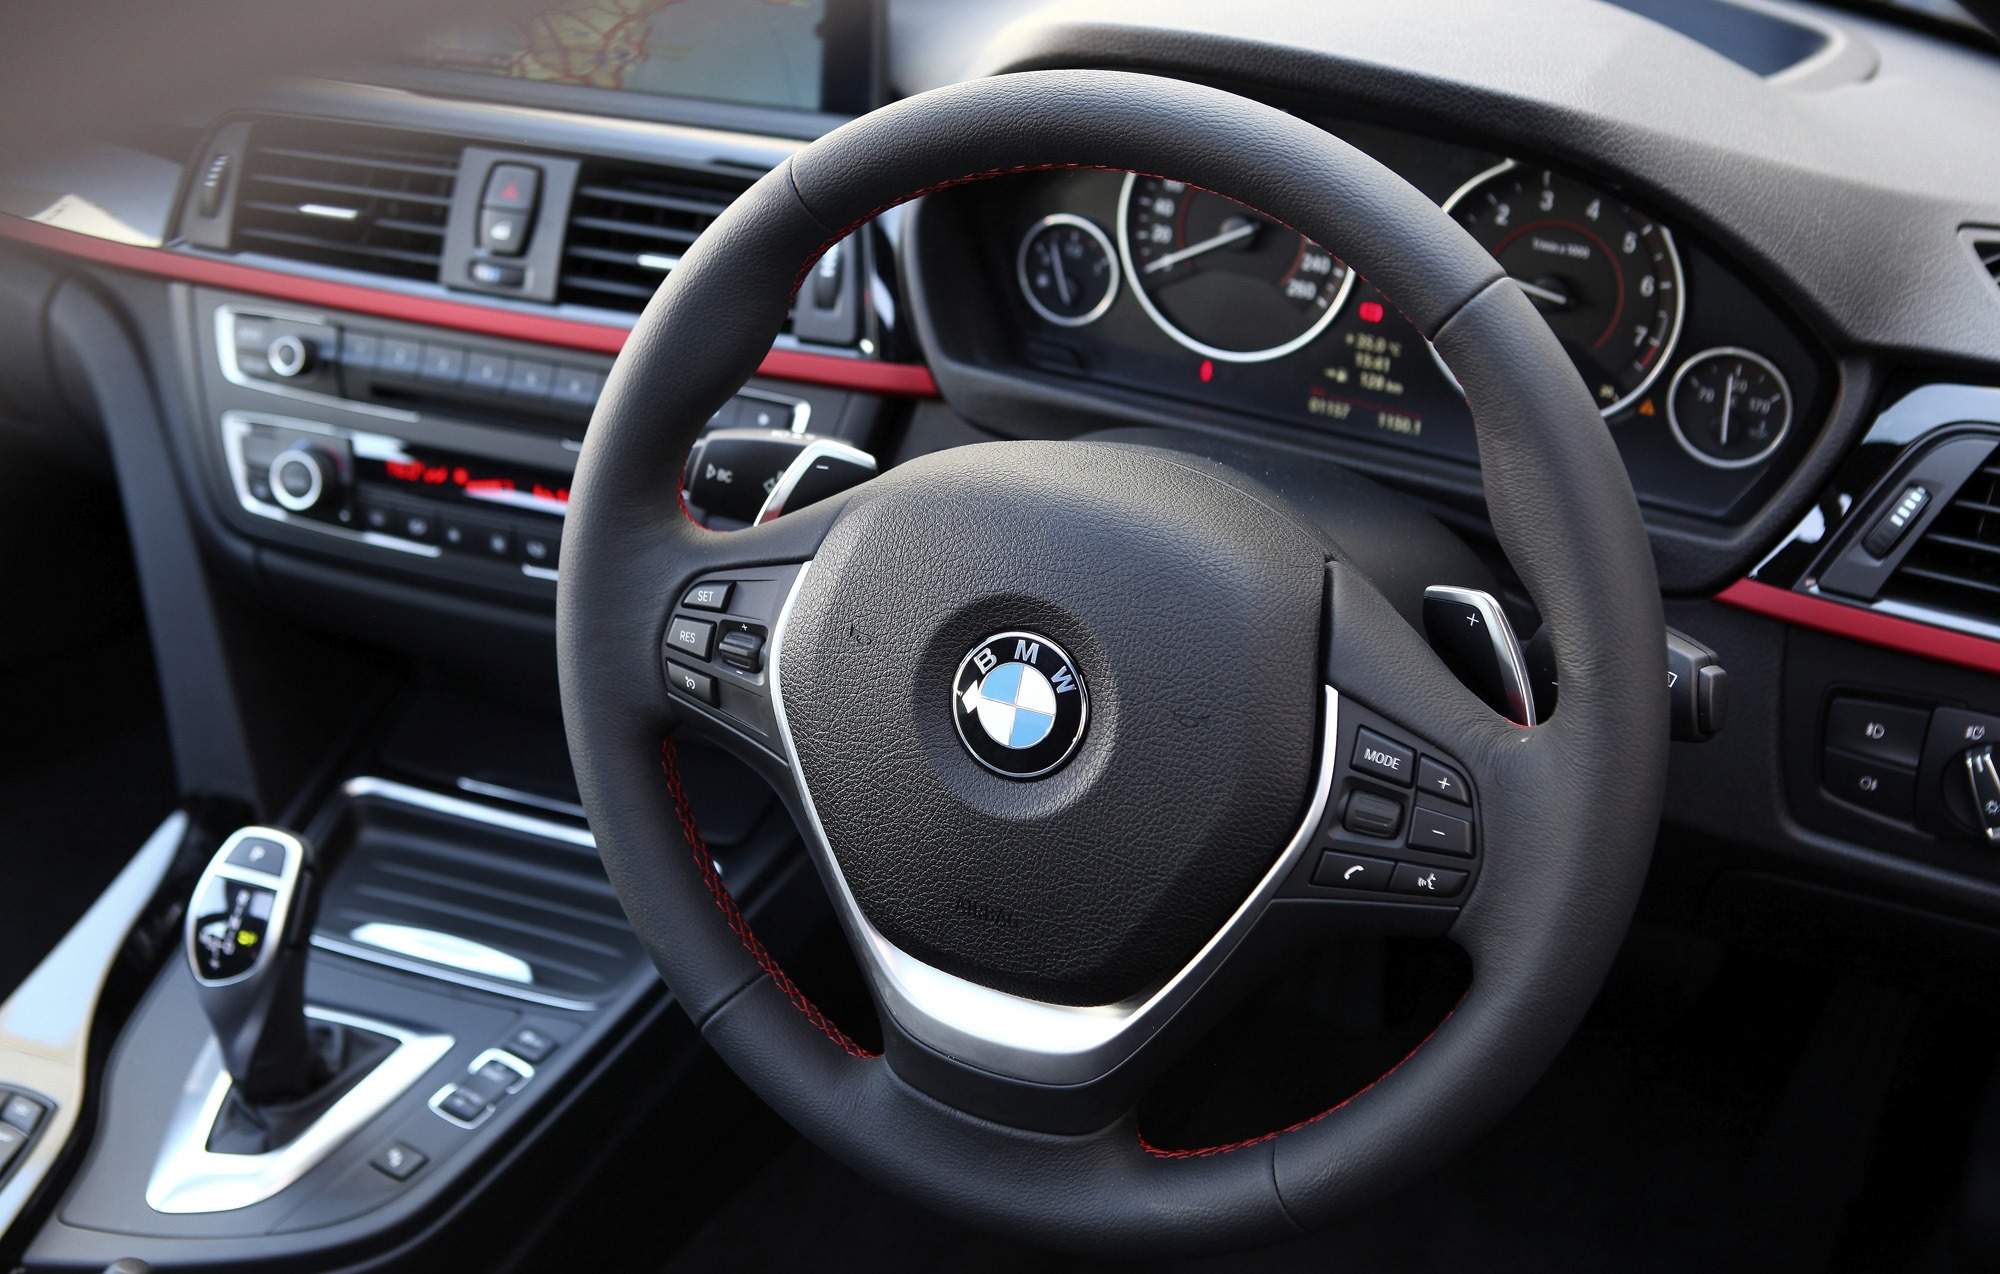 Bmw 3 Series 318i In Pakistan 3 Series Bmw 3 Series 318i Price Specs Features And Pakwheels